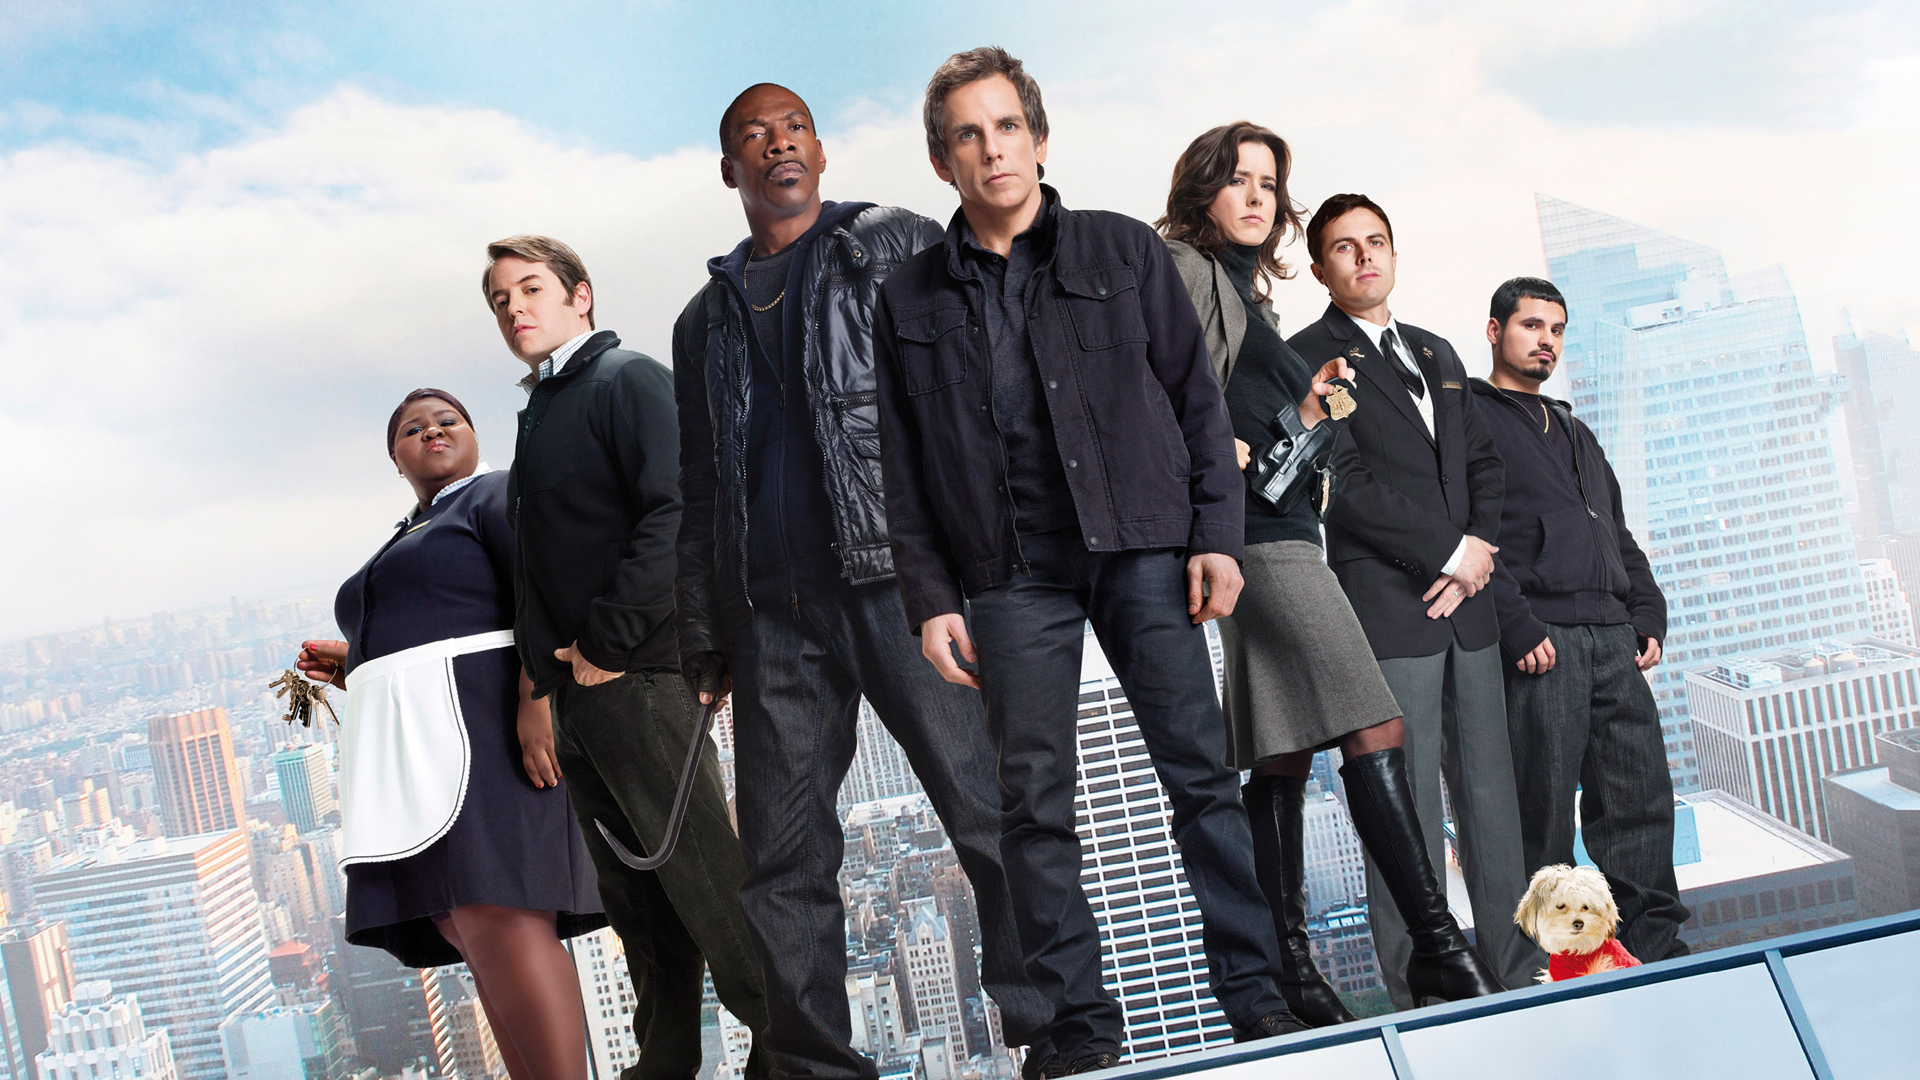 wallpapers-shows-heist-tower-original-843627-1920x1080